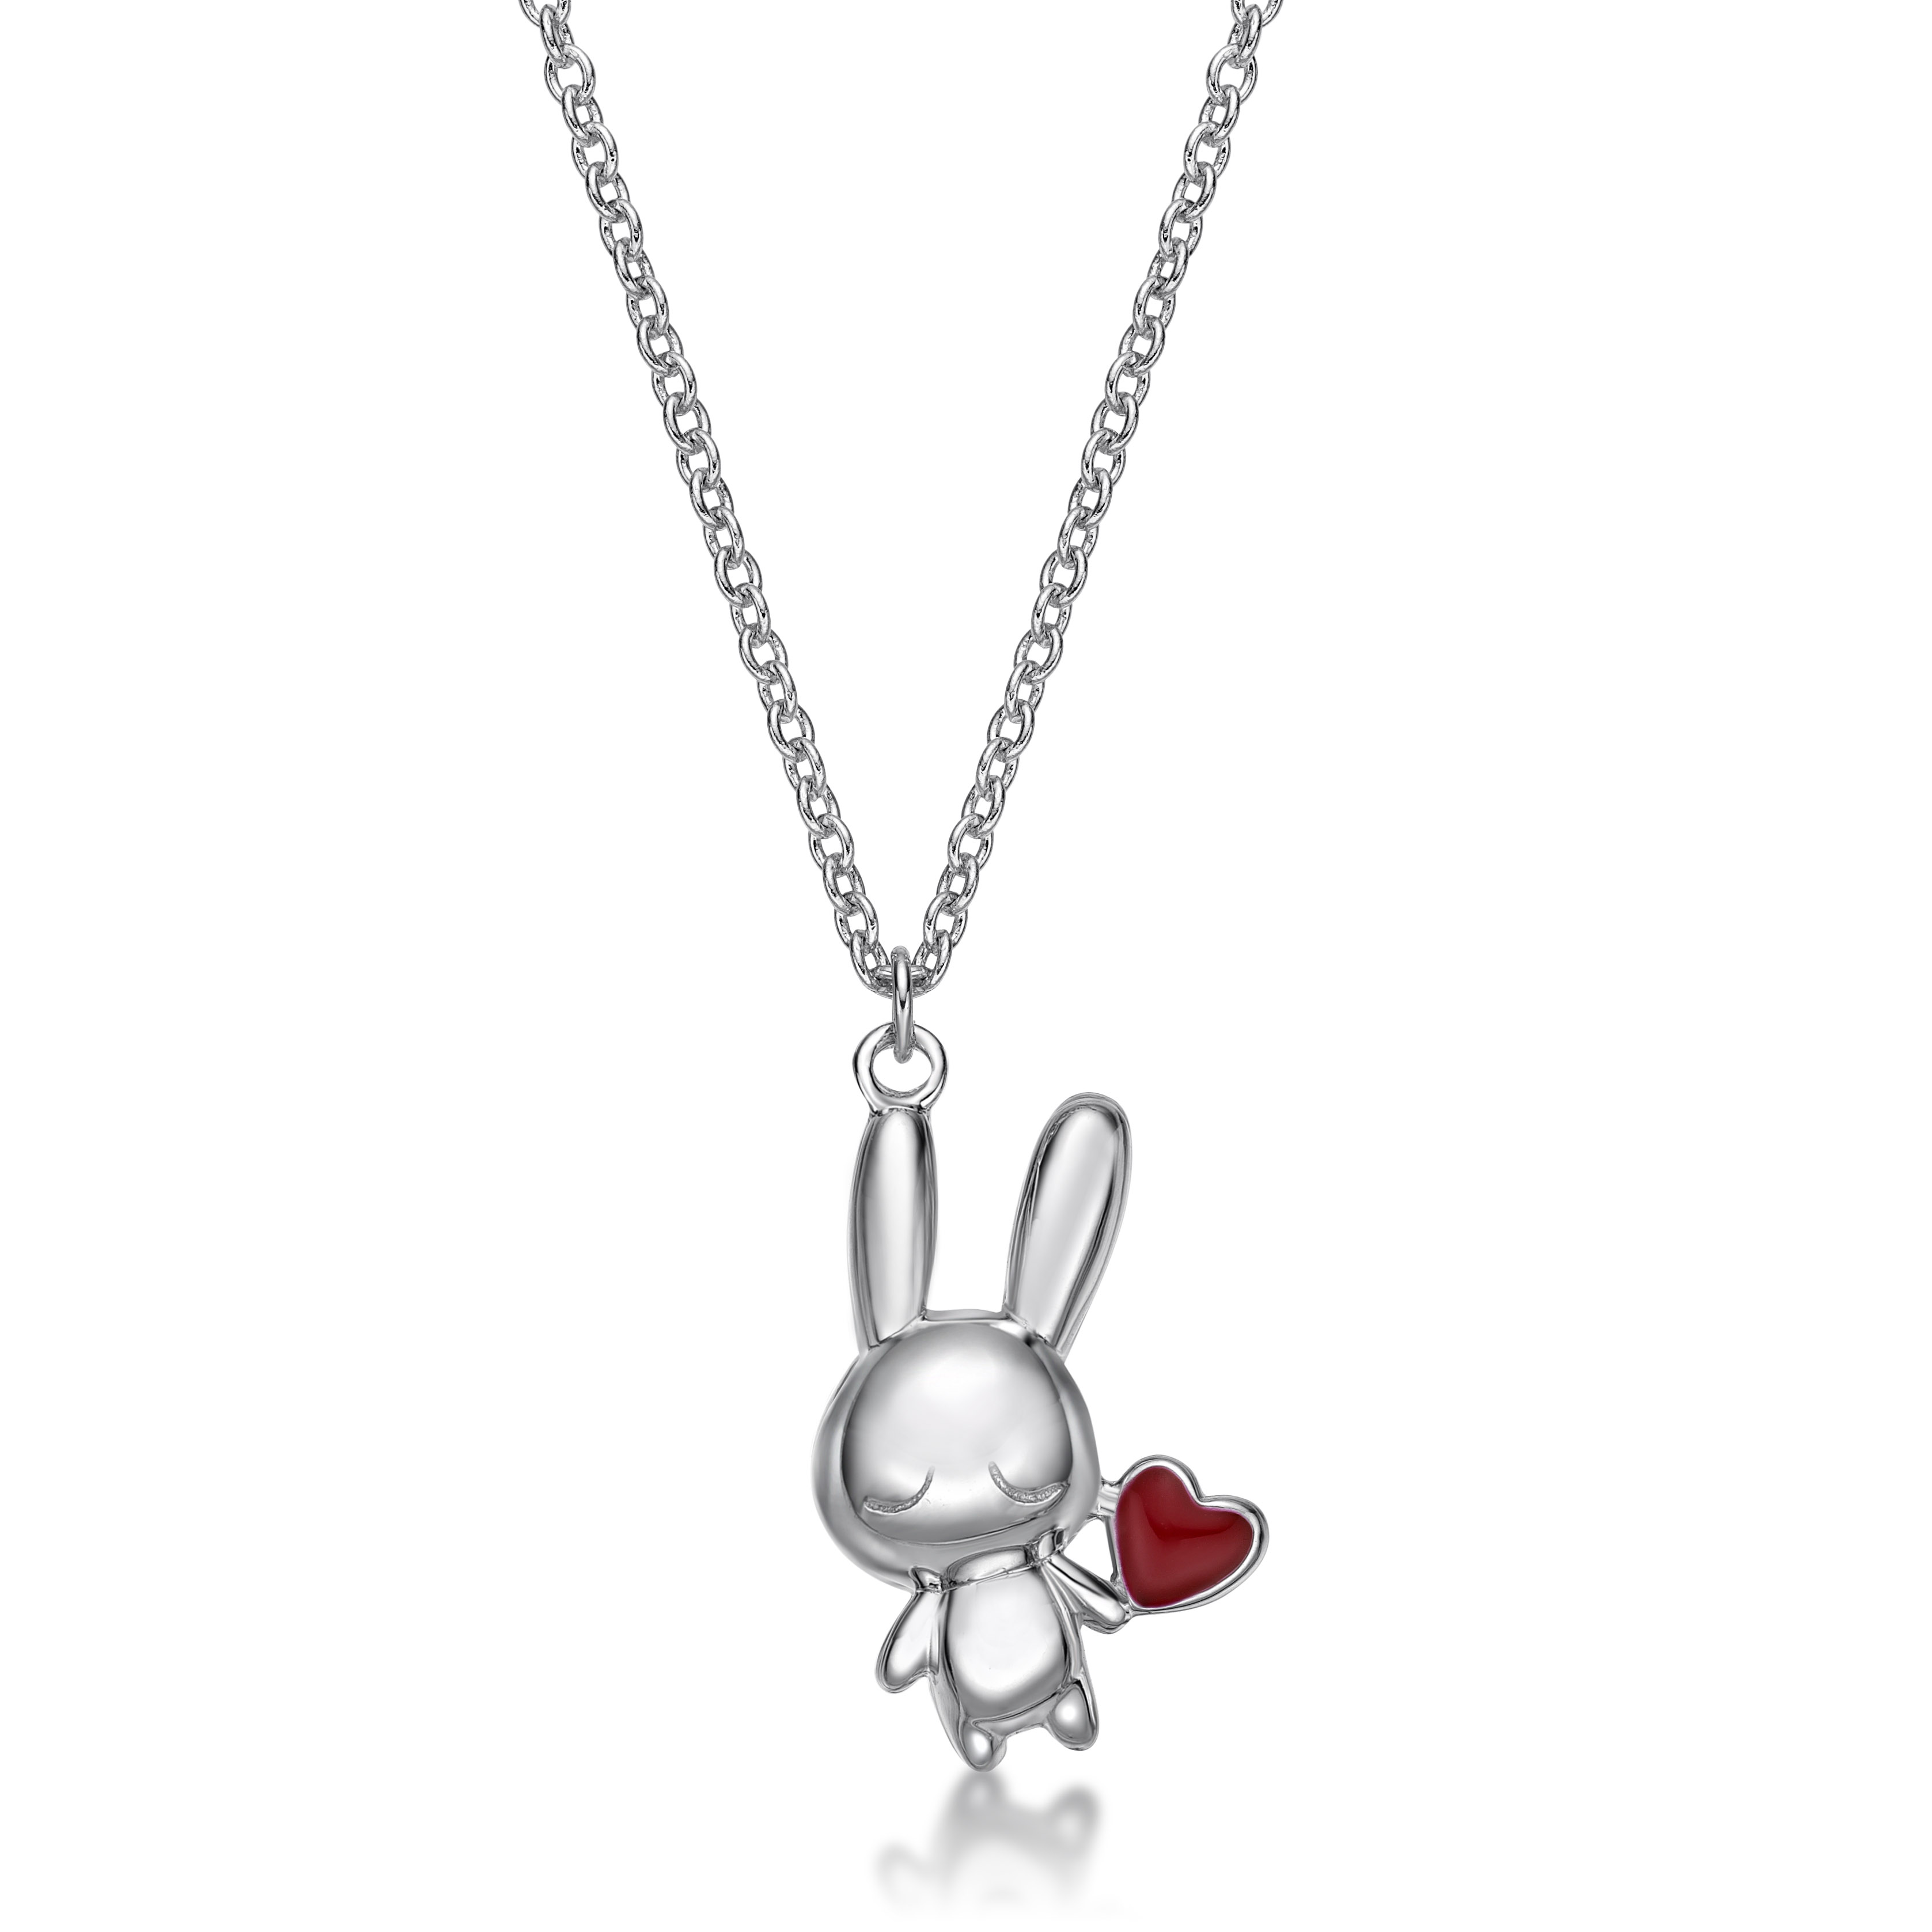 Rabbit C Icon & Heart Pendant with Necklace